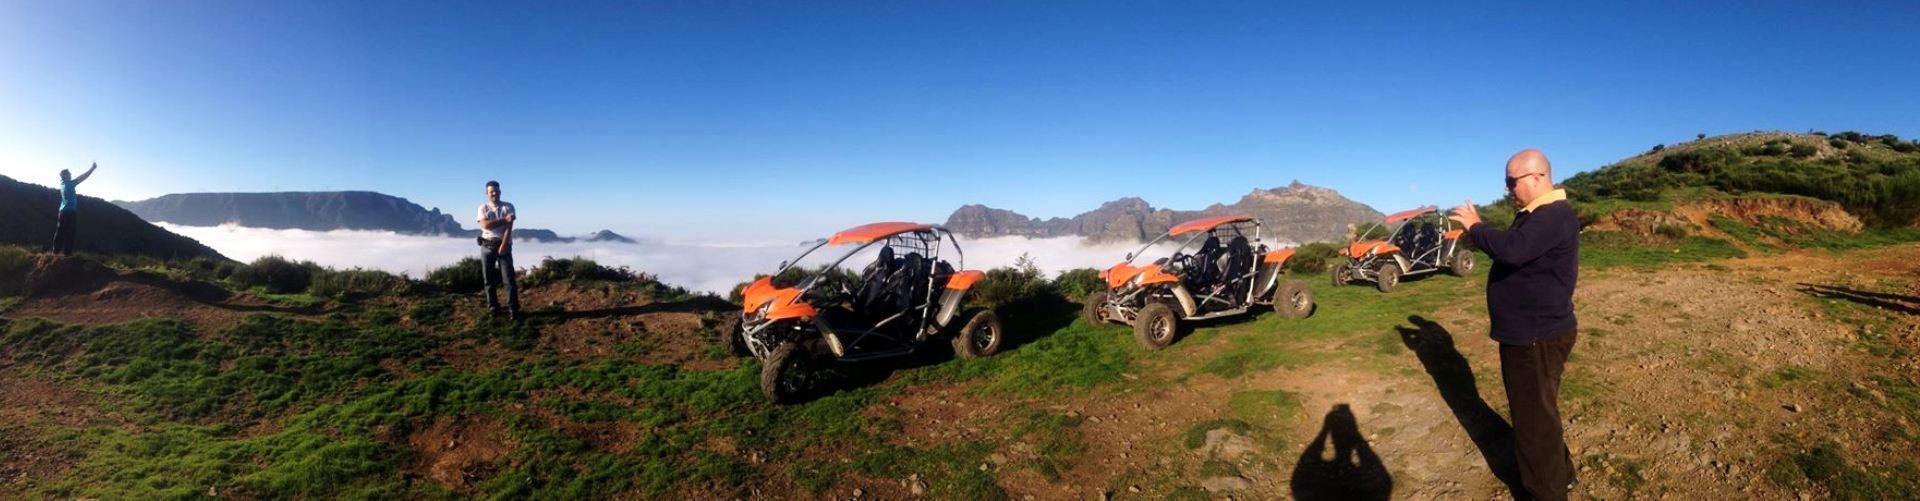 Buggy & Quad bike in Madeira Island